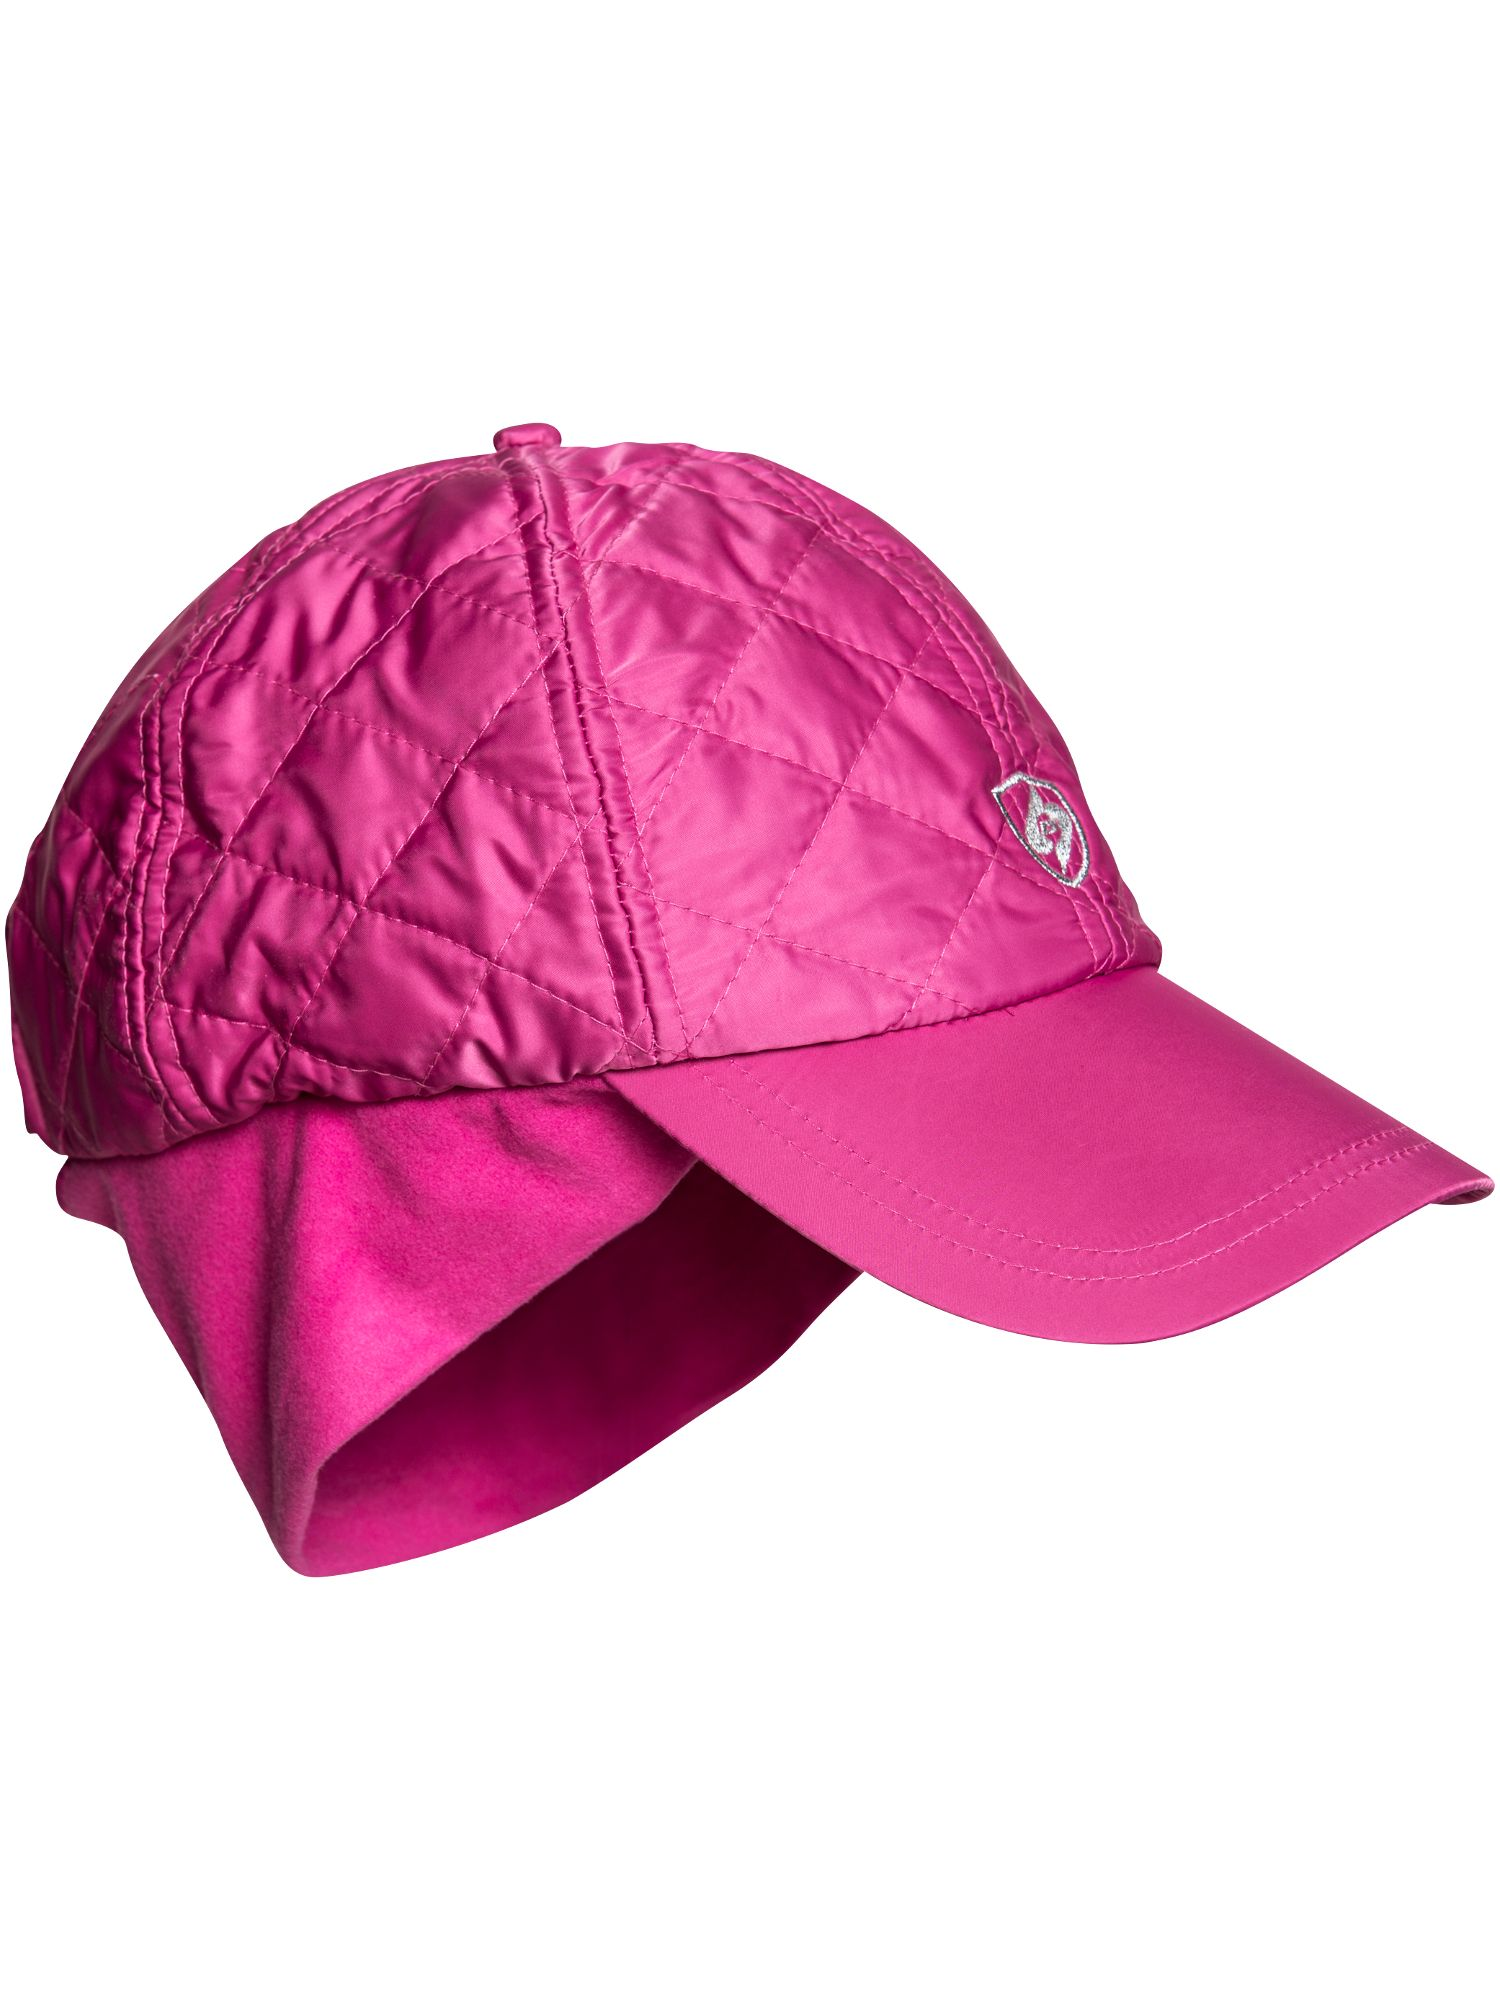 Daily Sports Daily Sports Jolie hat, Pink